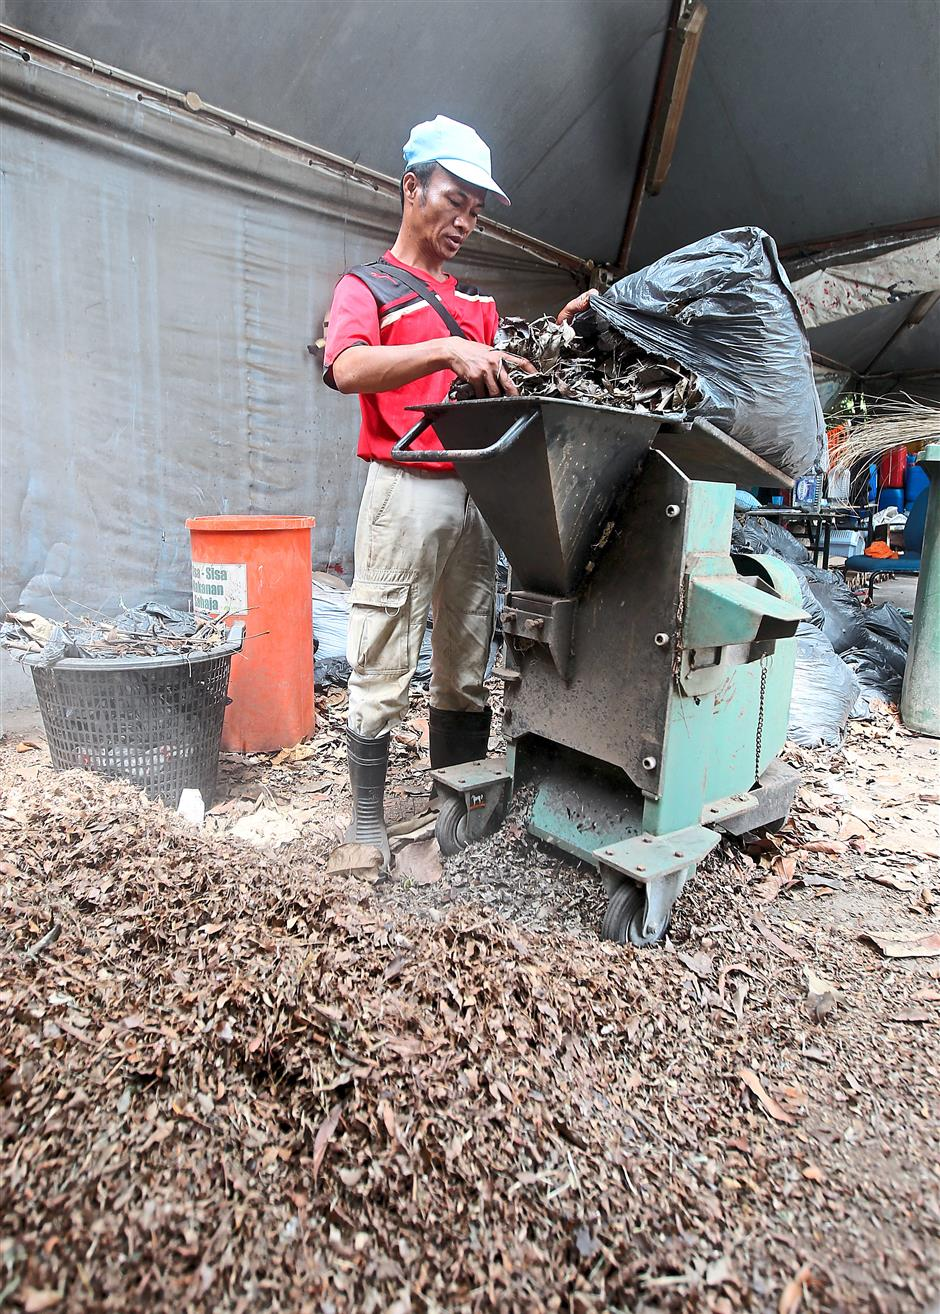 Minimising trash: Garden waste is shredded before being composted together with food waste under Universiti Malaya's Zero Waste Campaign. Photos: AZHAR MAHFOF/The Star